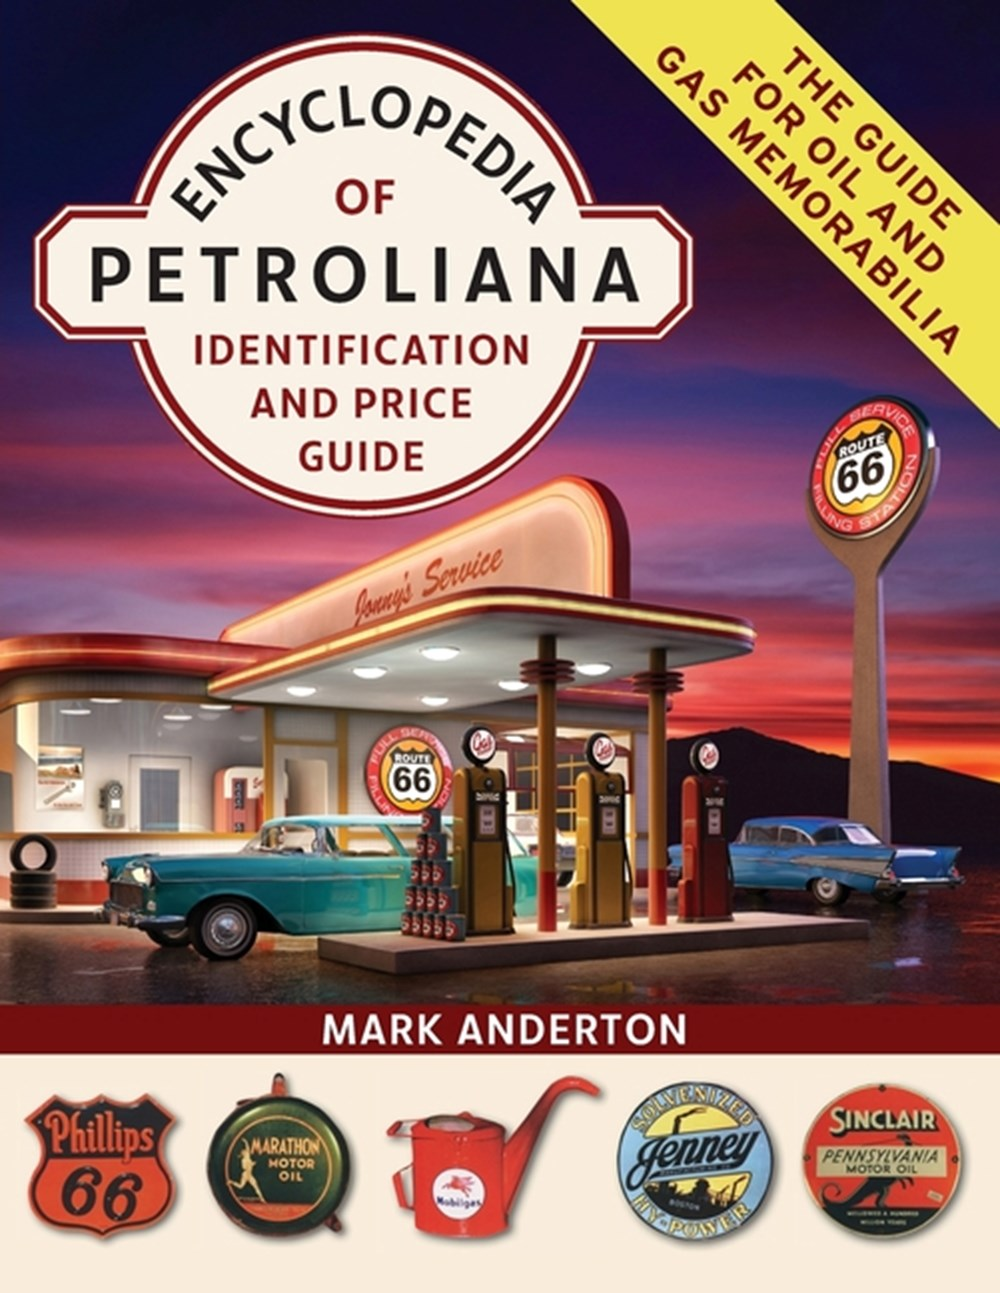 Encyclopedia of Petroliana Identification and Price Guide